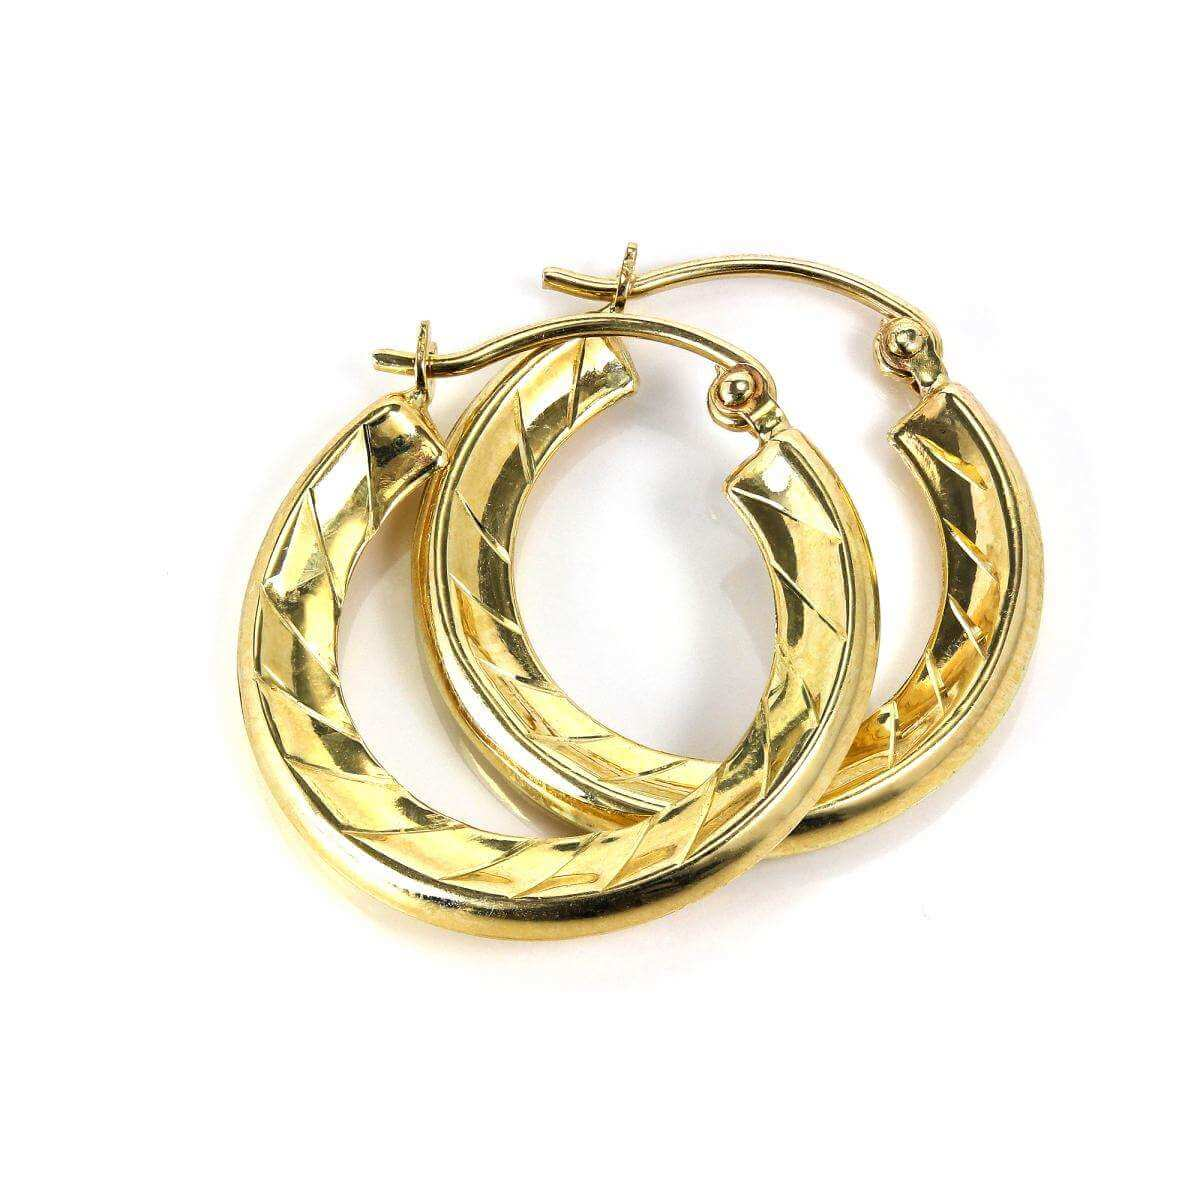 9ct Gold Light Textured Spiral 12mm Creole Hoop Earrings